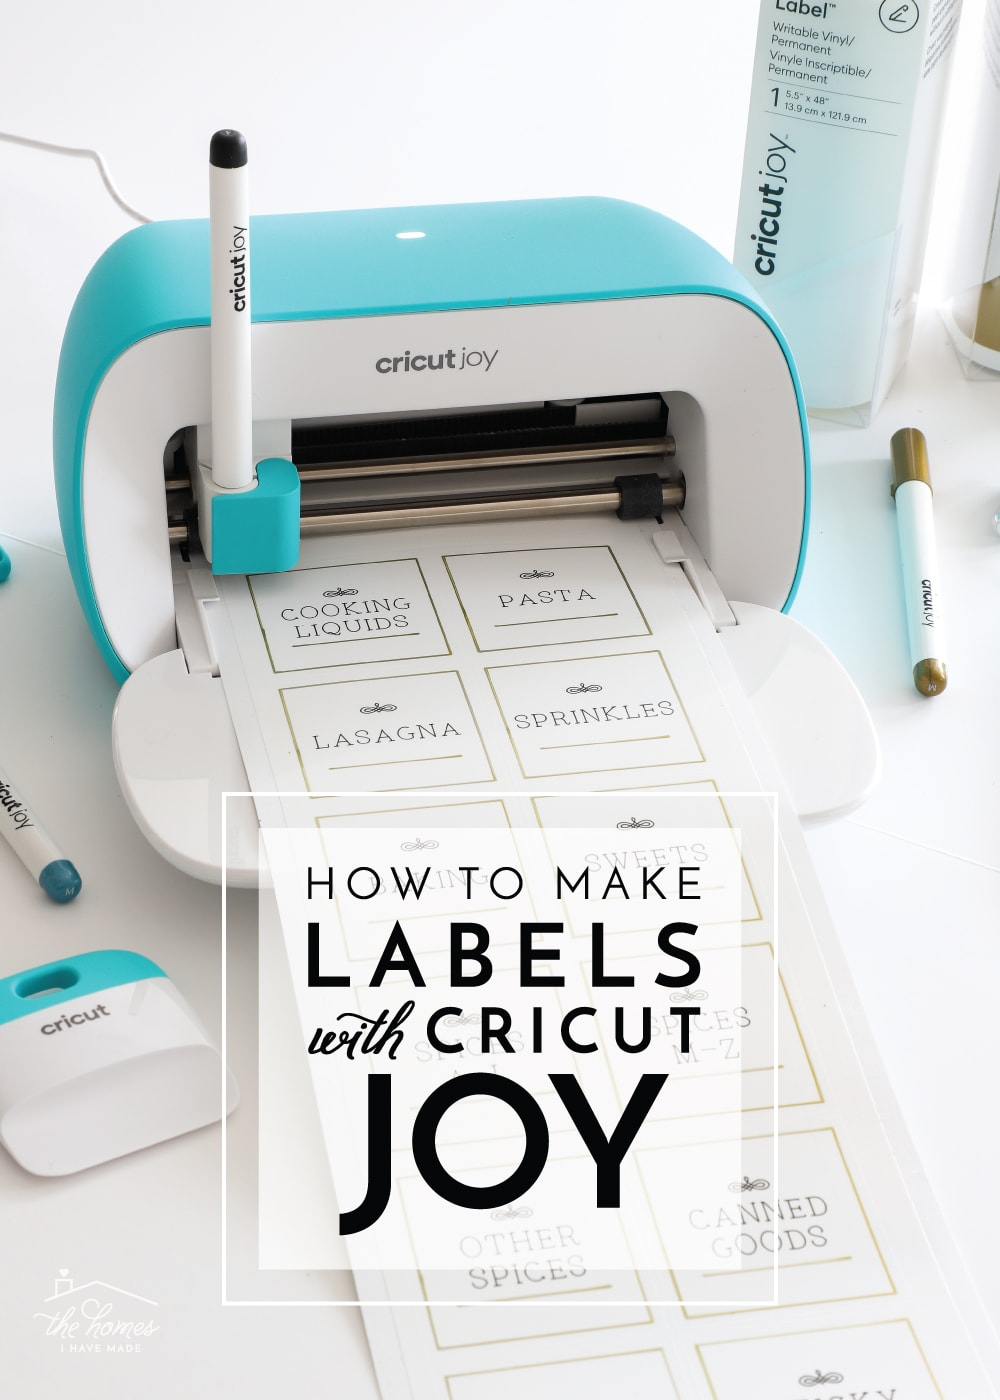 How to Make Labels with Cricut Joy